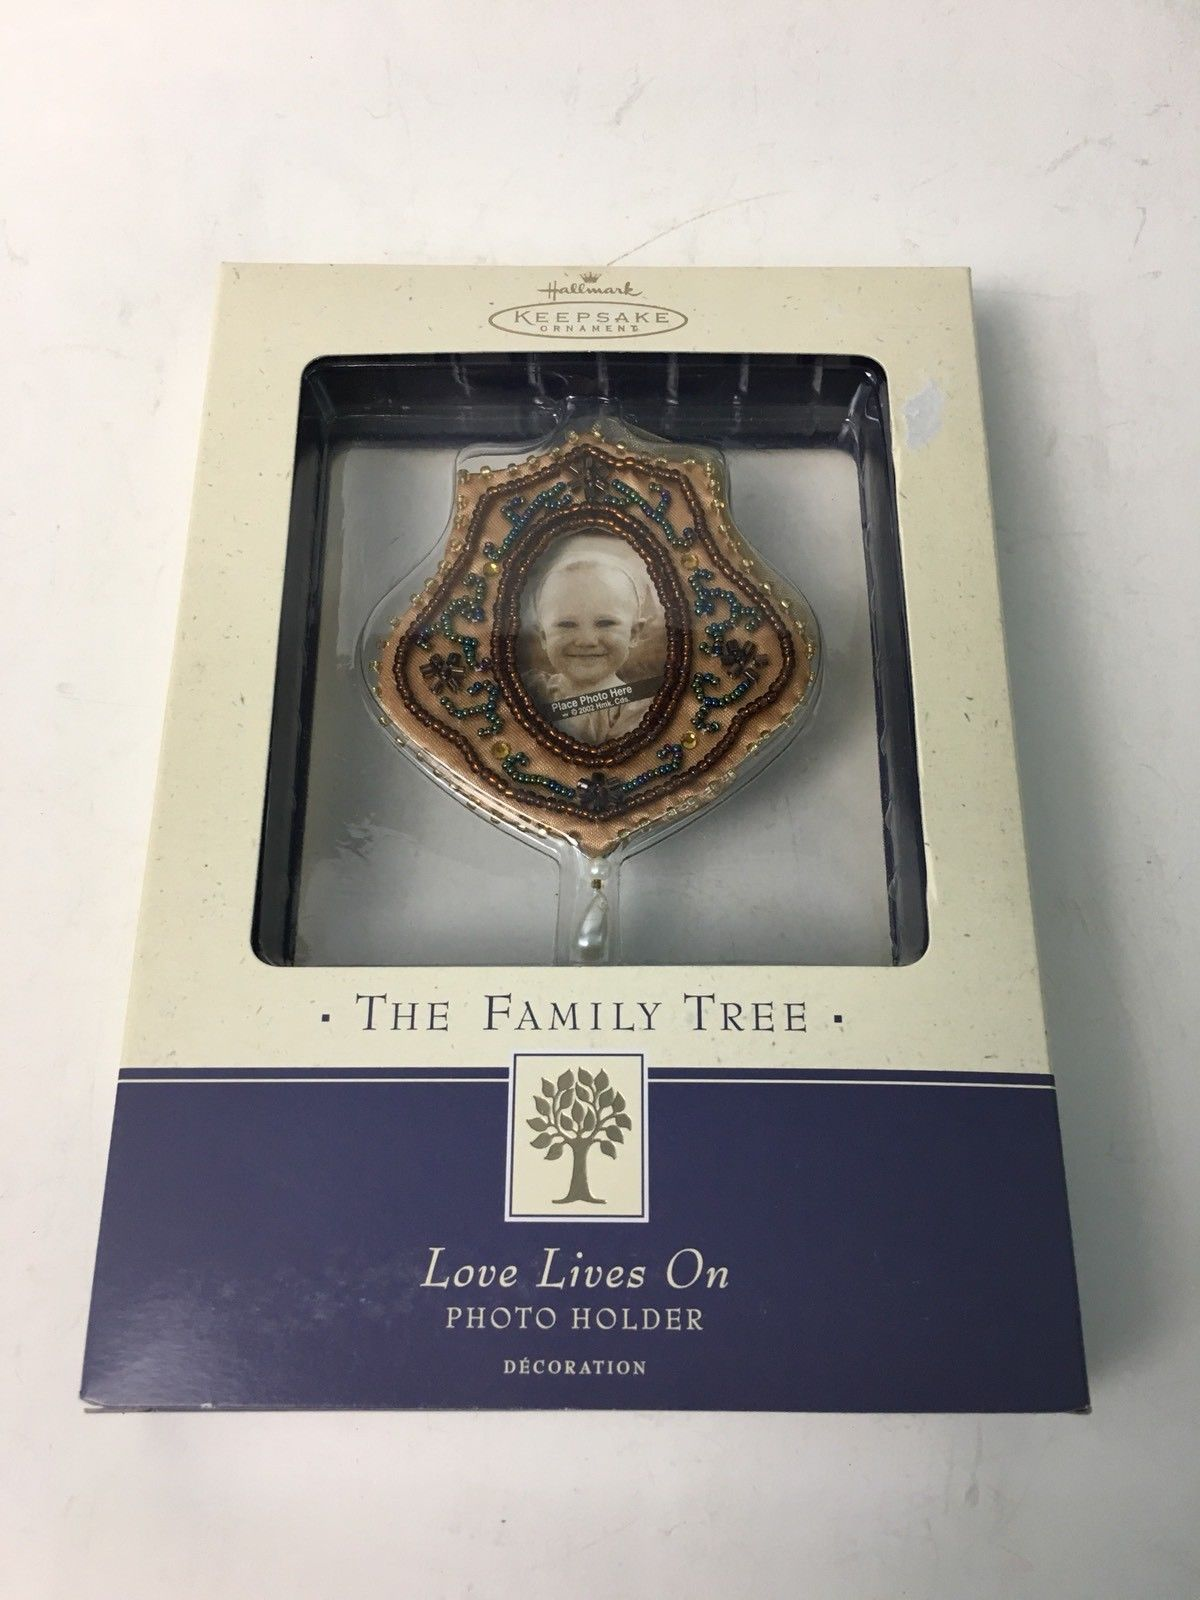 LOVE LIVES ON Family Tree Photo Holder NEW Hallmark Ornament BEADS GLASS 2002